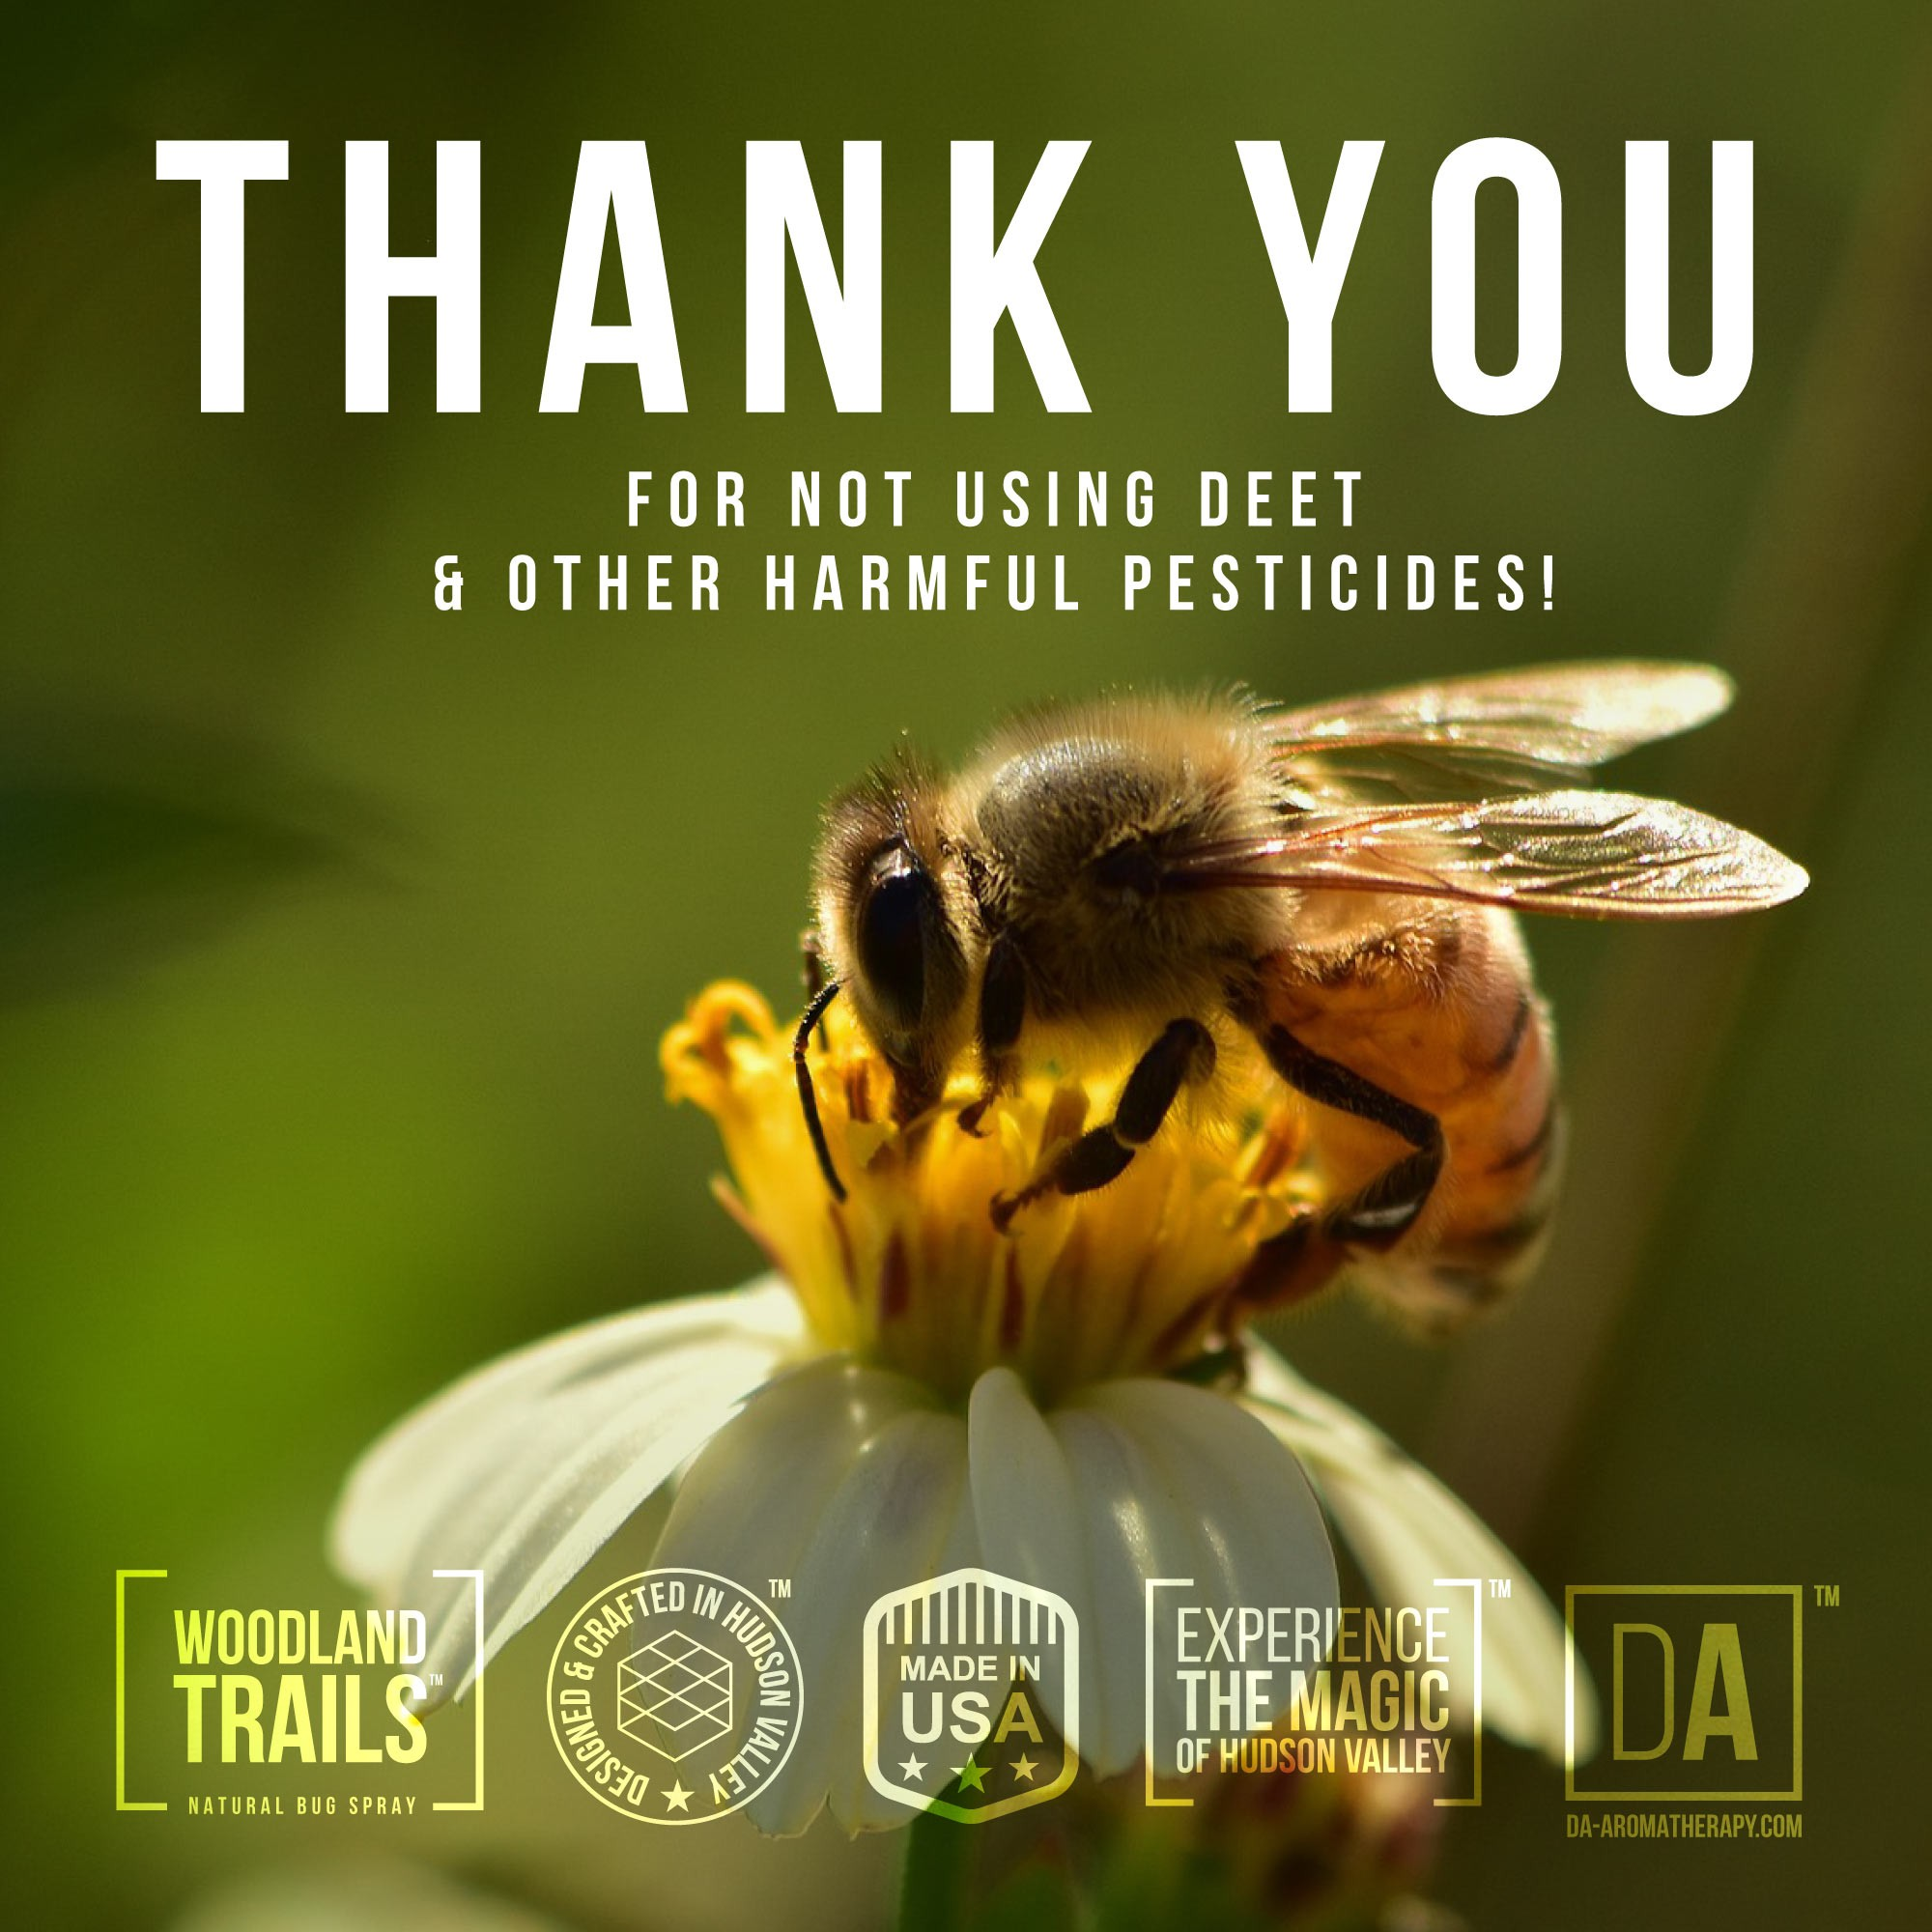 Help us save the honeybees and raise the awareness of dangers of DEET and other pesticides! #savethebees